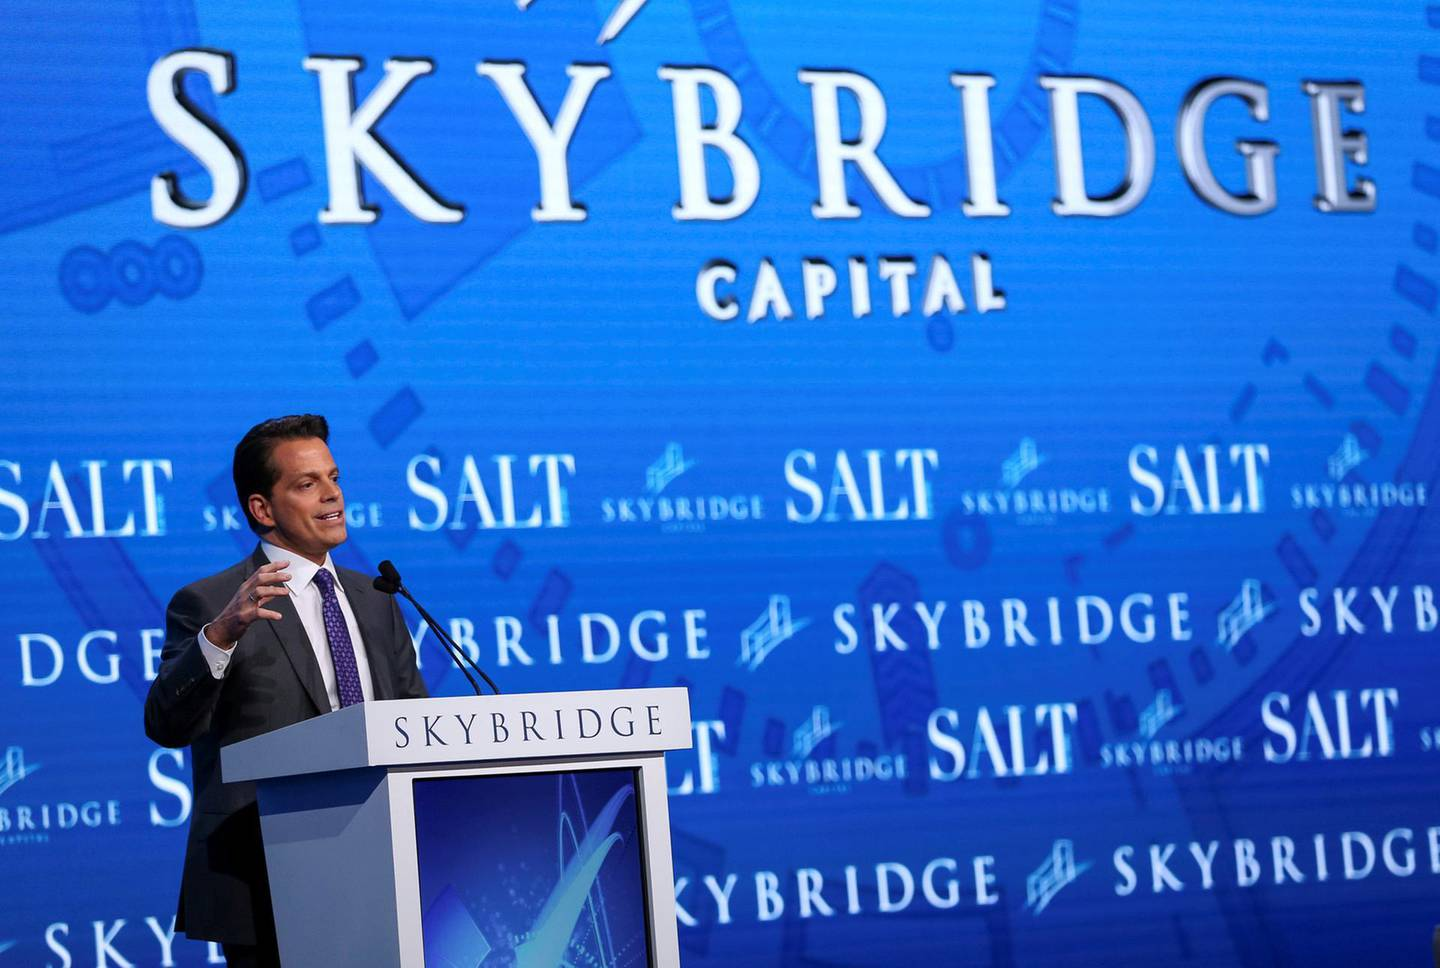 FILE PHOTO: Anthony Scaramucci, Founder and Co-Managing Partner at SkyBridge Capital, speaks during the opening remarks during the SALT conference in Las Vegas, Nevada, U.S. May 17, 2017.  REUTERS/Richard Brian/File Photo